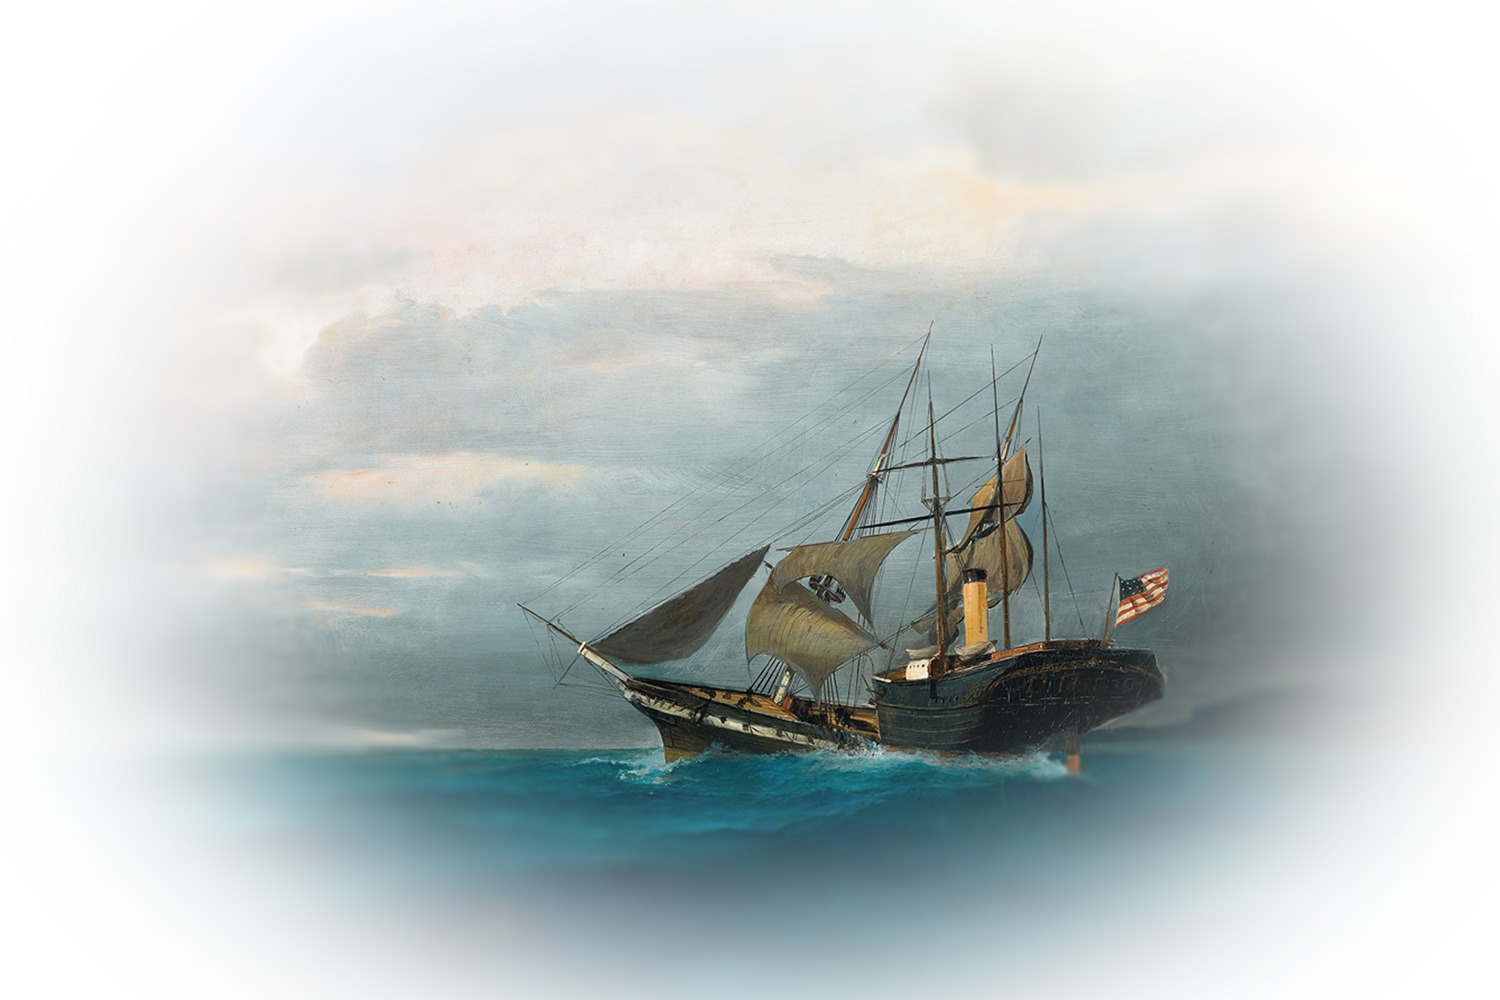 Daniolos Law Firm, image of ship in distress